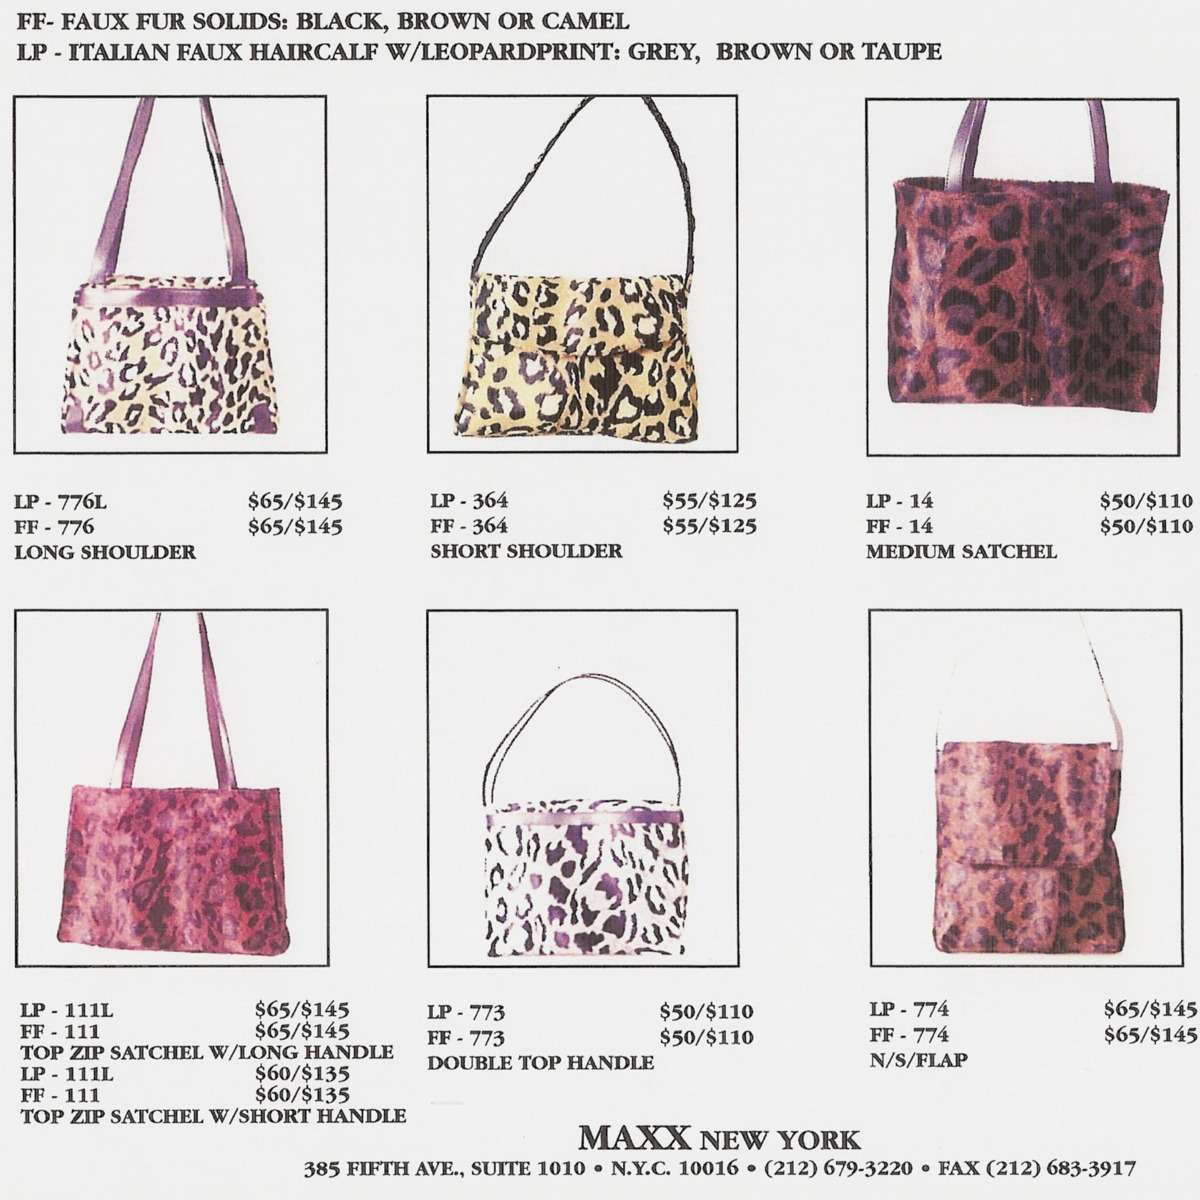 Handbag Catalog for Maxx Handbags